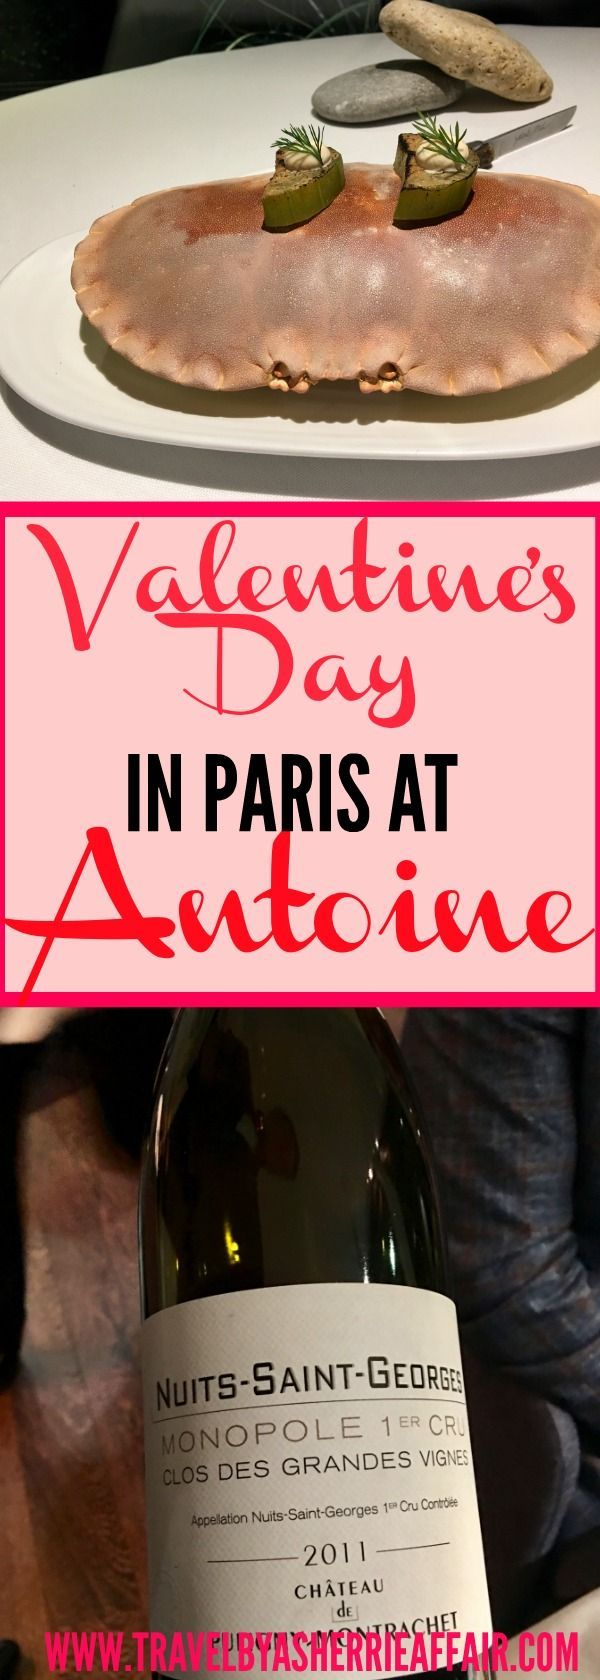 Restaurant review at the amazing Antoine Paris France.  Valentine's Day evening was spectacular and delicious!  Read all about our wonderful romantic dining experience ! #Valentinesday #Restaurant #Paris #France